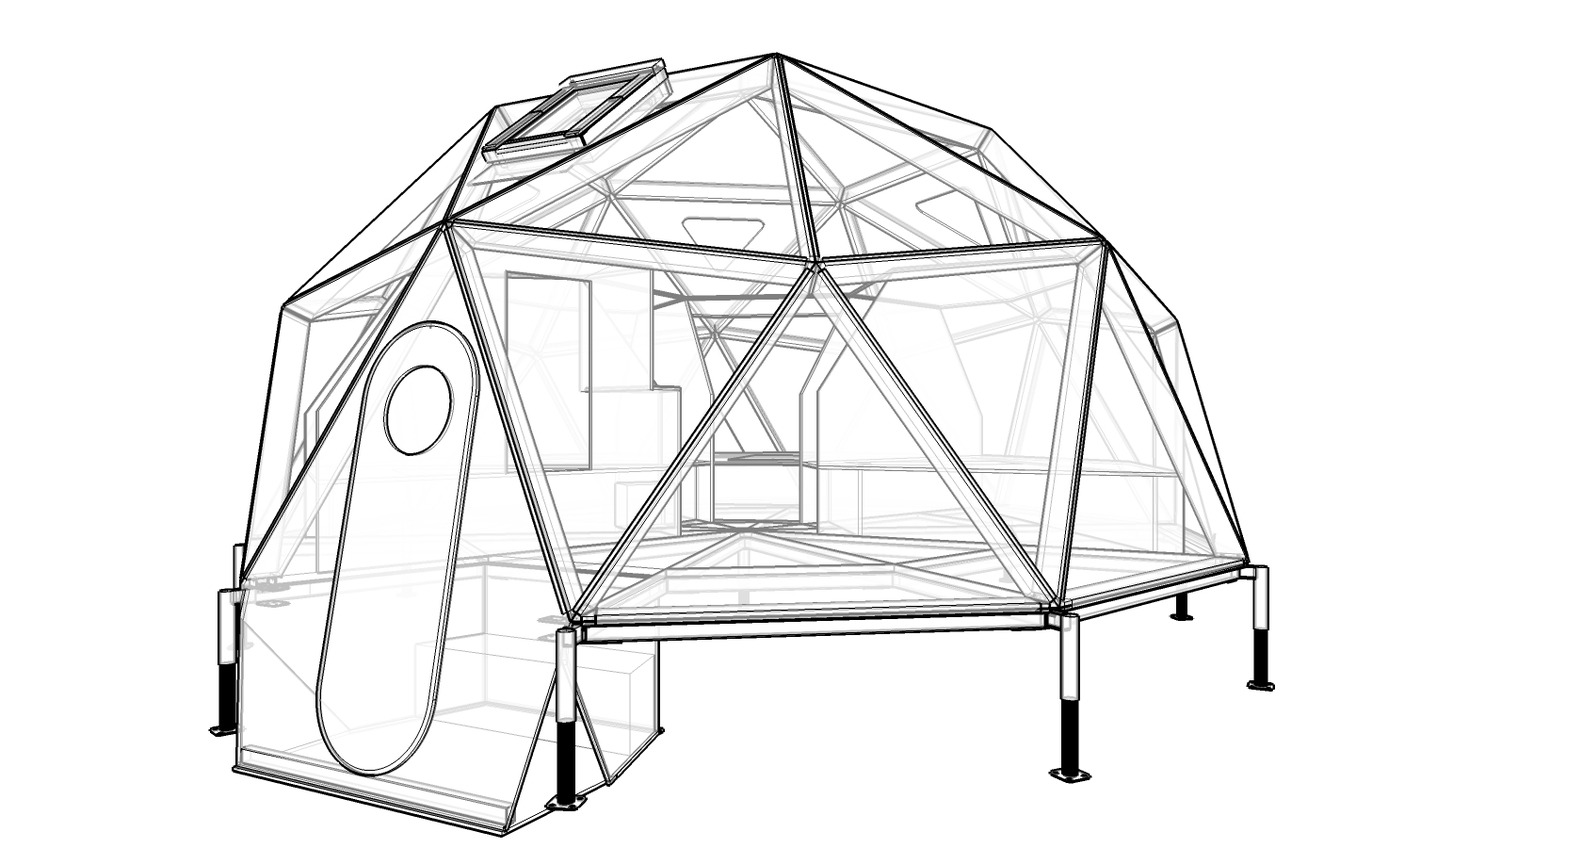 1582x848 Gallery Of Lightweight And Compact Shelter Is The Last Base Before